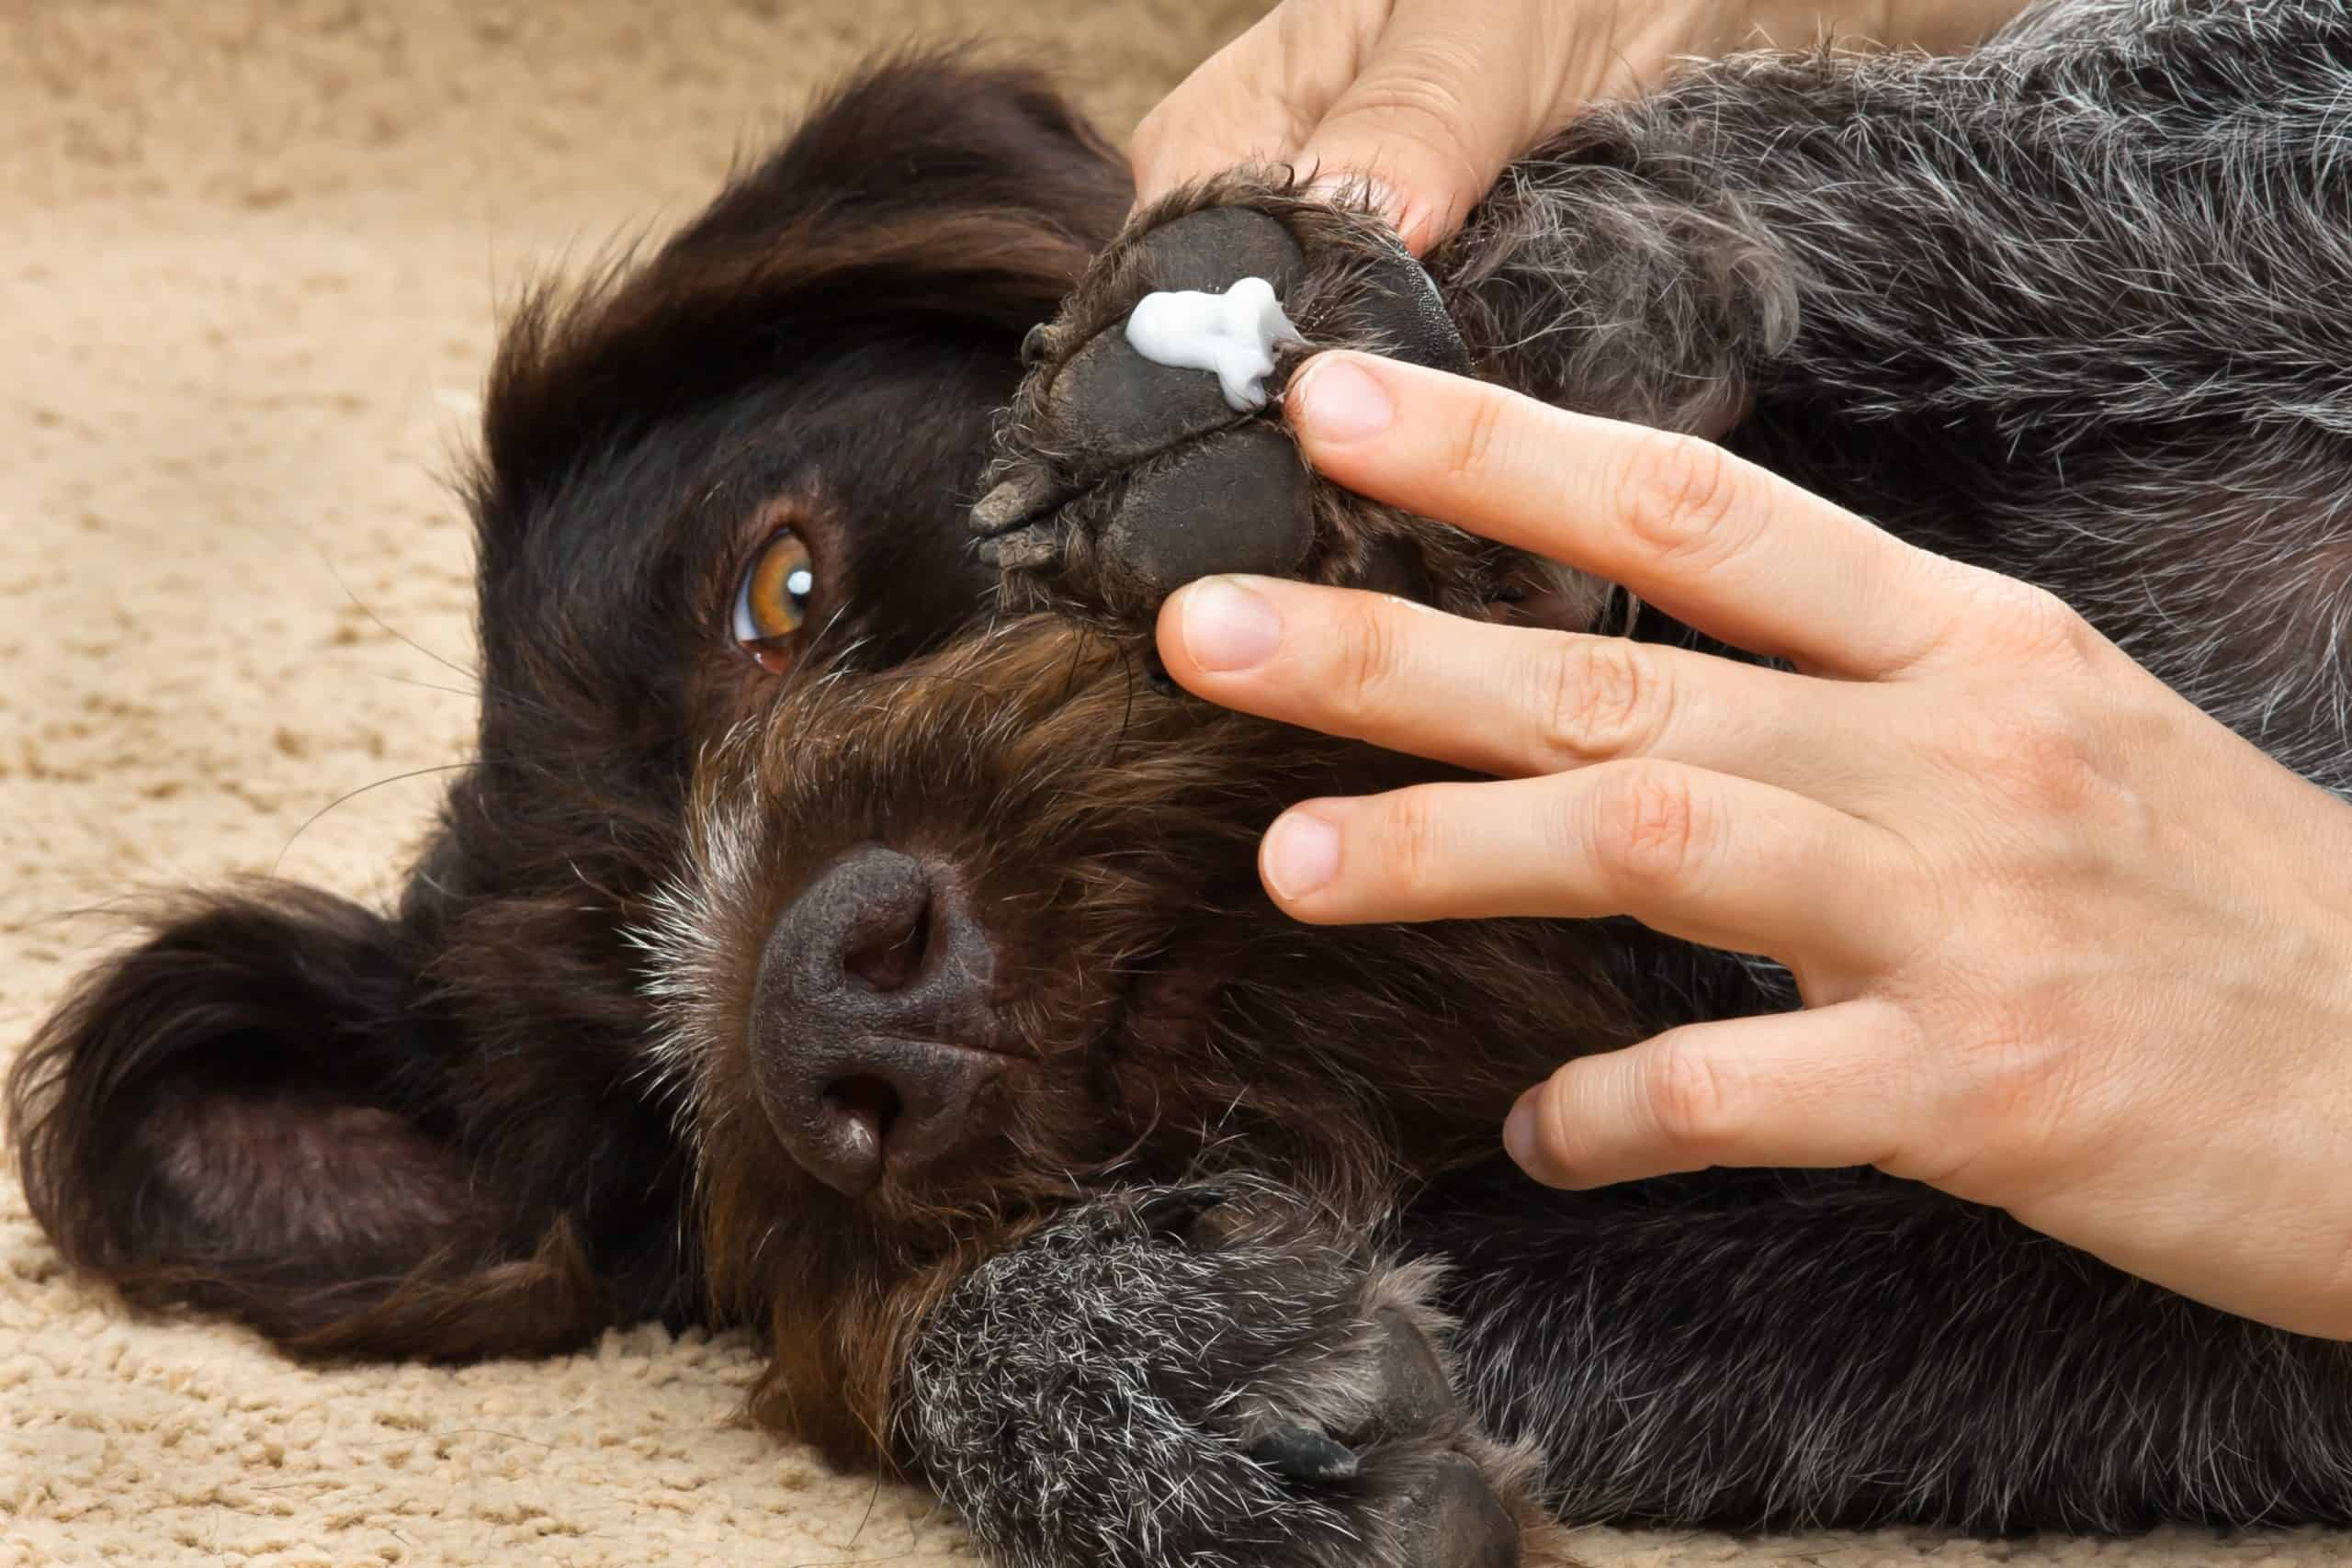 hands of owner smearing ointment to the paw of dog, closeup